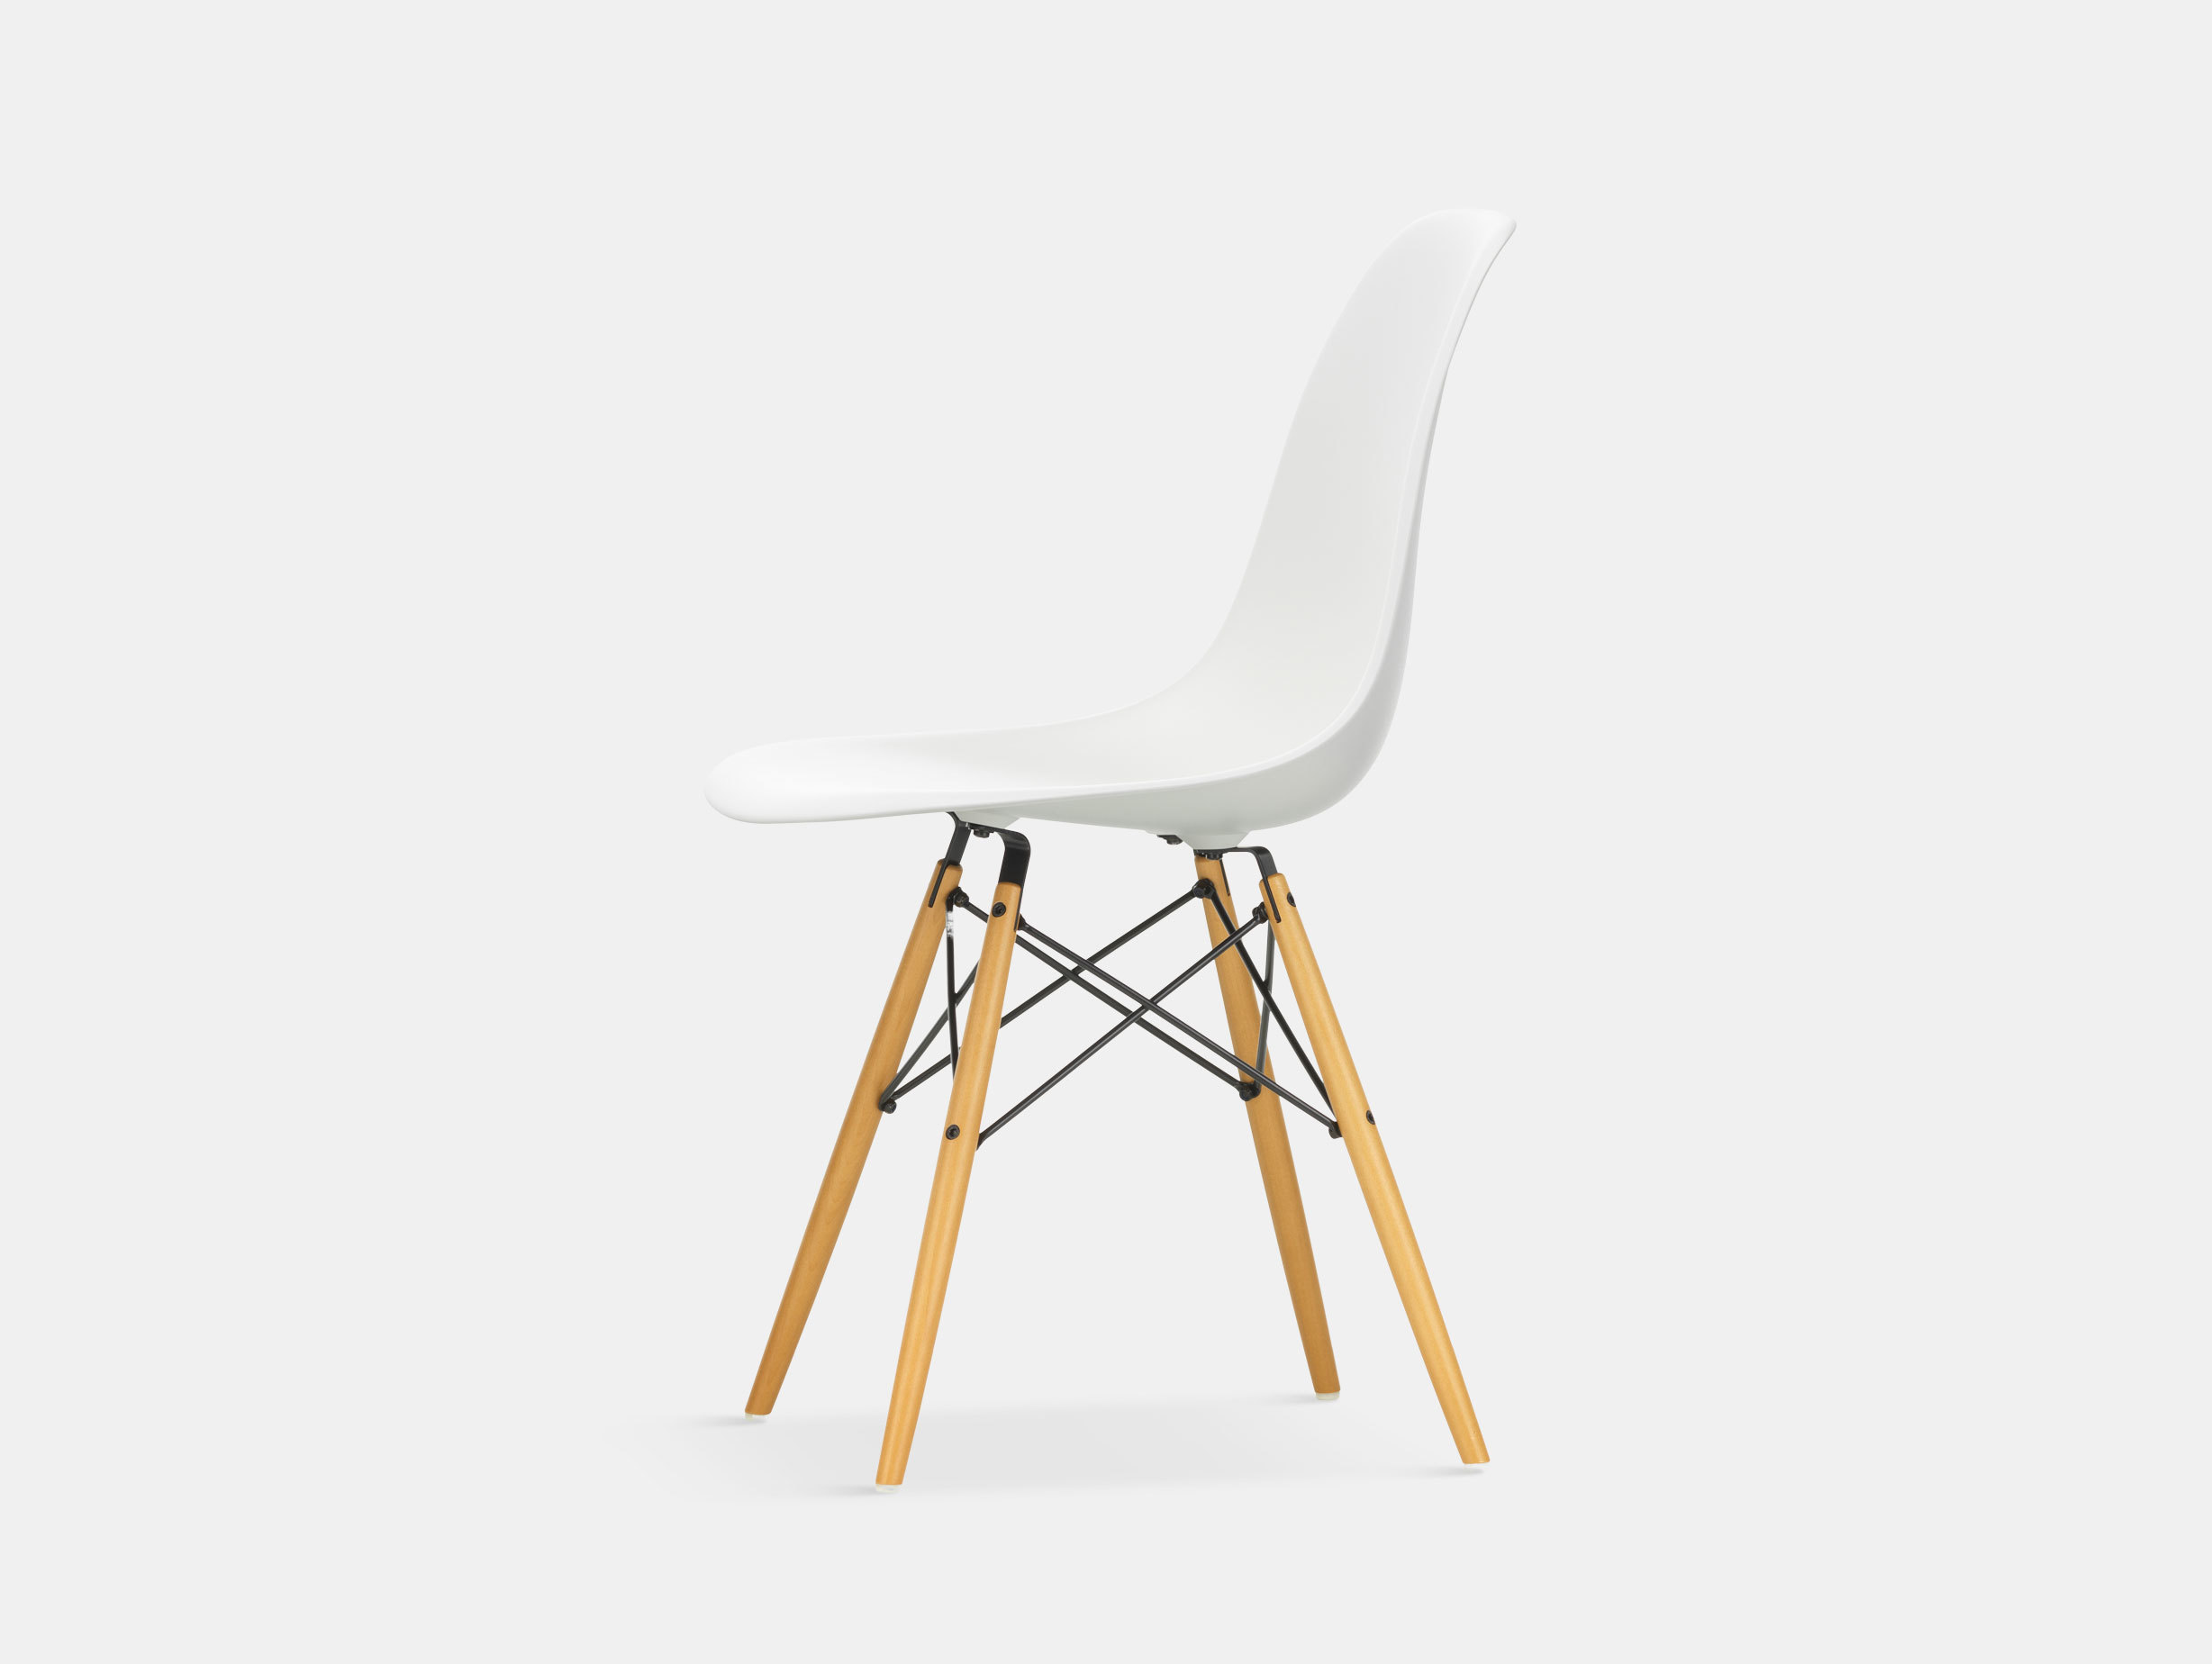 Vitra Eames DSW Plastic Side Chair white golden maple legs